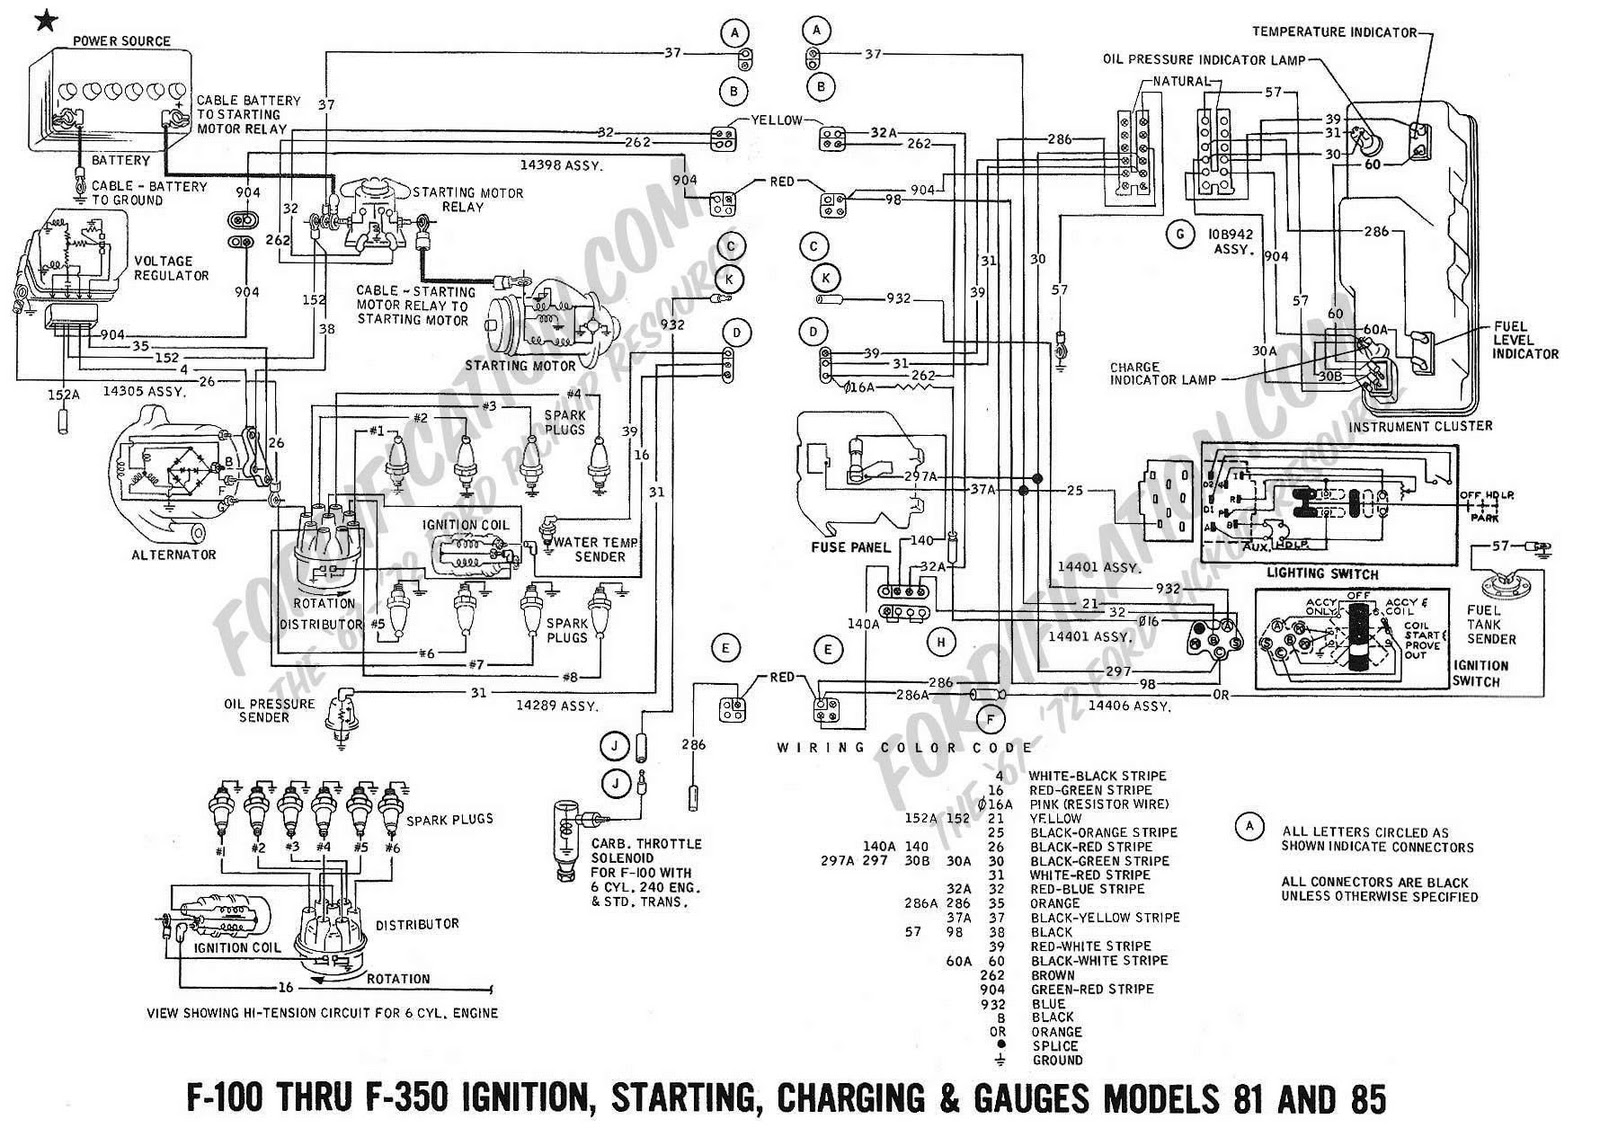 2003 Jeep Grand Cherokee Turn Signal Wiring Diagram. 2000